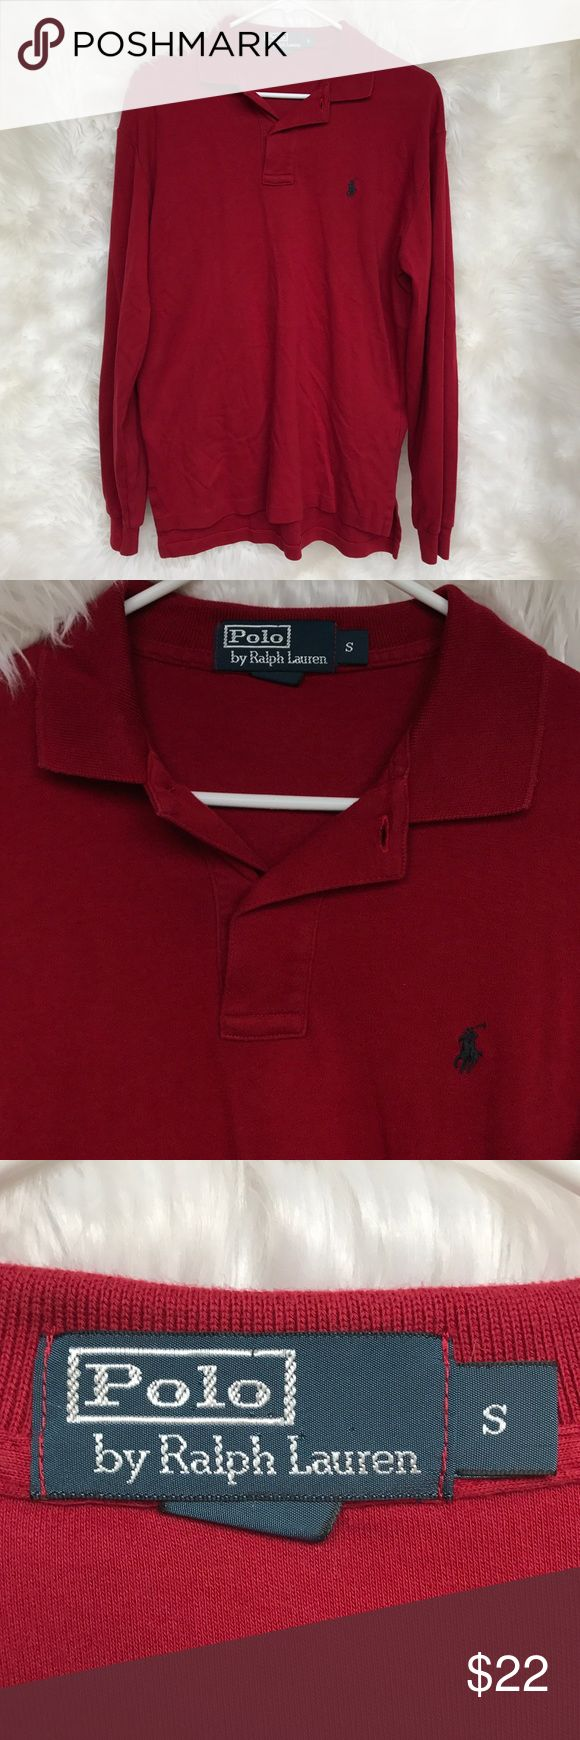 Men's Polo By Ralph Lauren Long Sleeve Polo Shirt Men's Red Polo By Ralph Lauren Long Sleeve Polo Shirt. Polo is a size small. It has been worn a few times, but is still in excellent condition! Perfect for summertime. Great for dressing up or just a casual look! Open to offers! ☺️ Polo by Ralph Lauren Shirts Polos